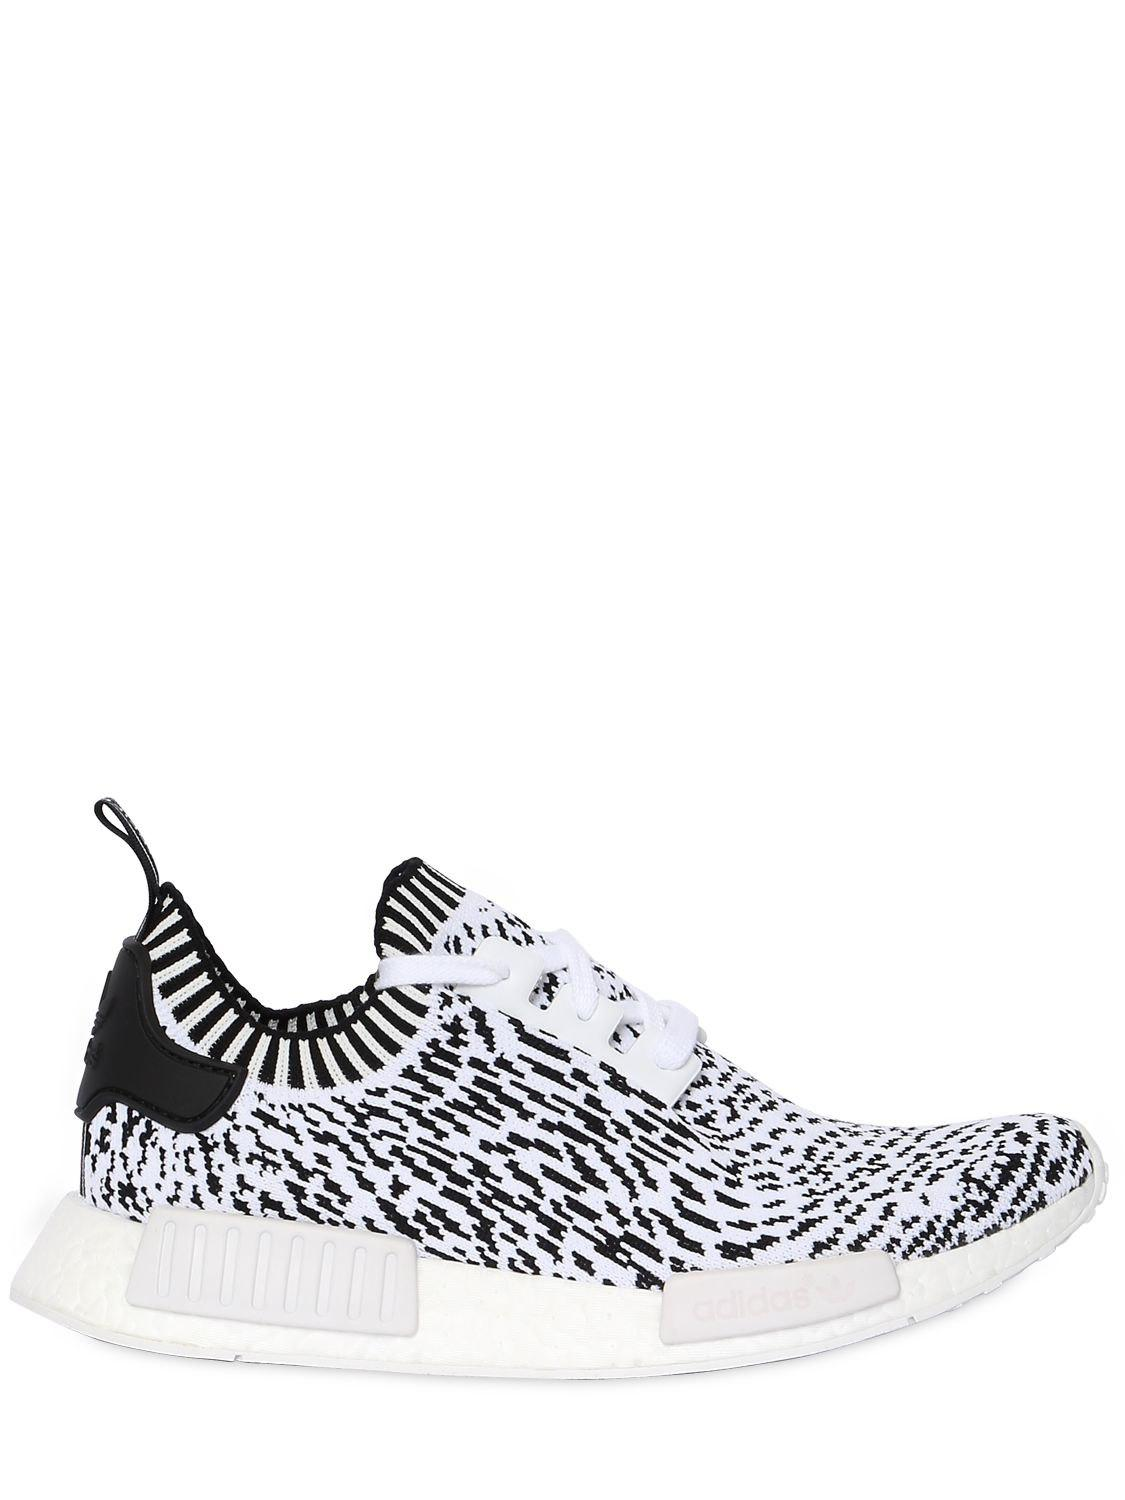 bf2c05d4638 Lyst - Adidas Originals Nmd R1 Primeknit Sneakers in White for Men ...